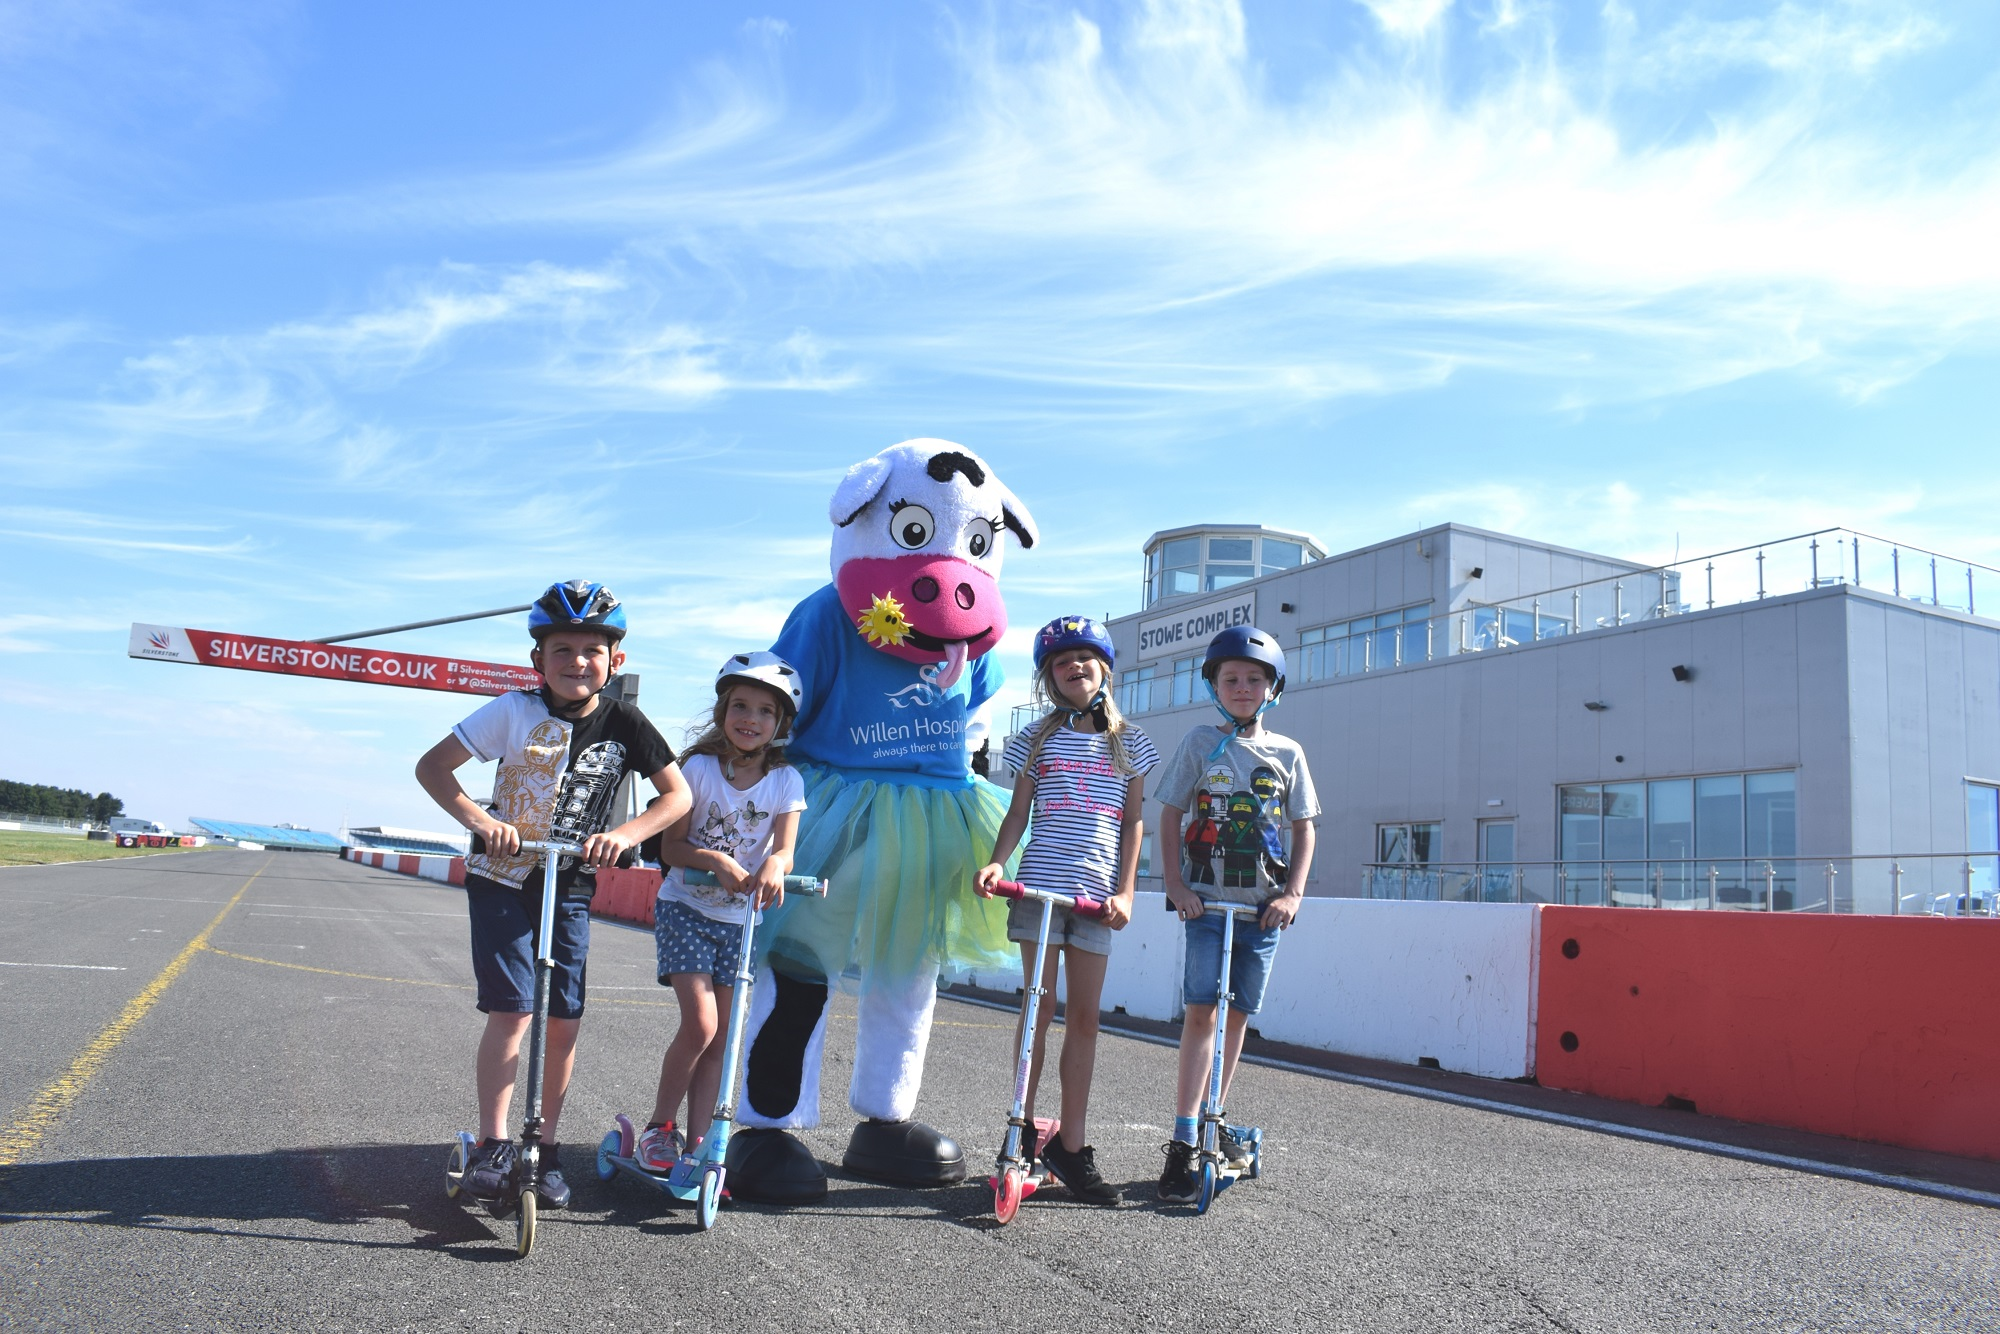 Scooterthon Comes To Silverstone